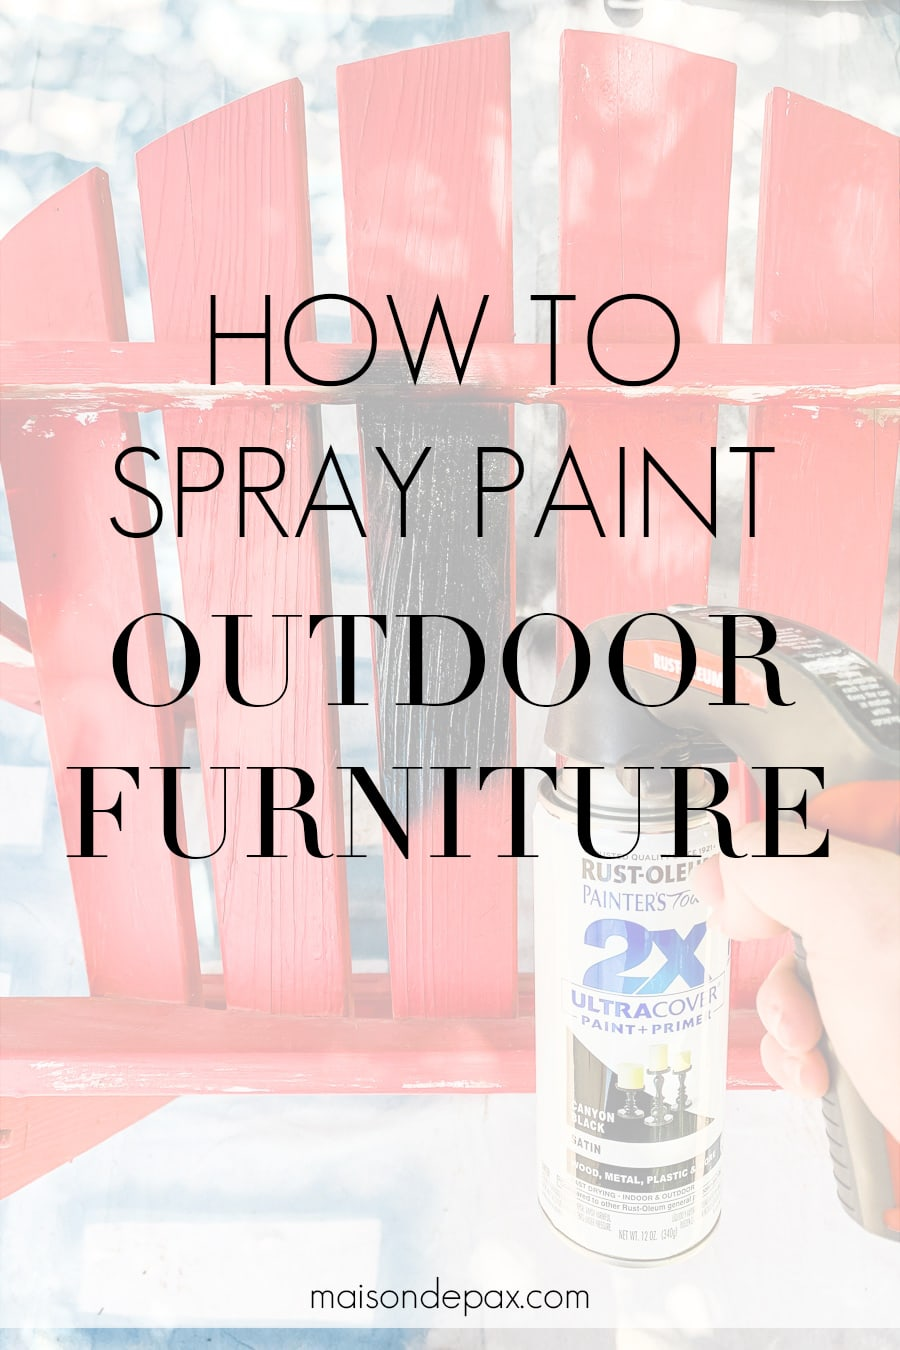 spray paint can with overlay: how to spray paint outdoor furniture | Maison de Pax